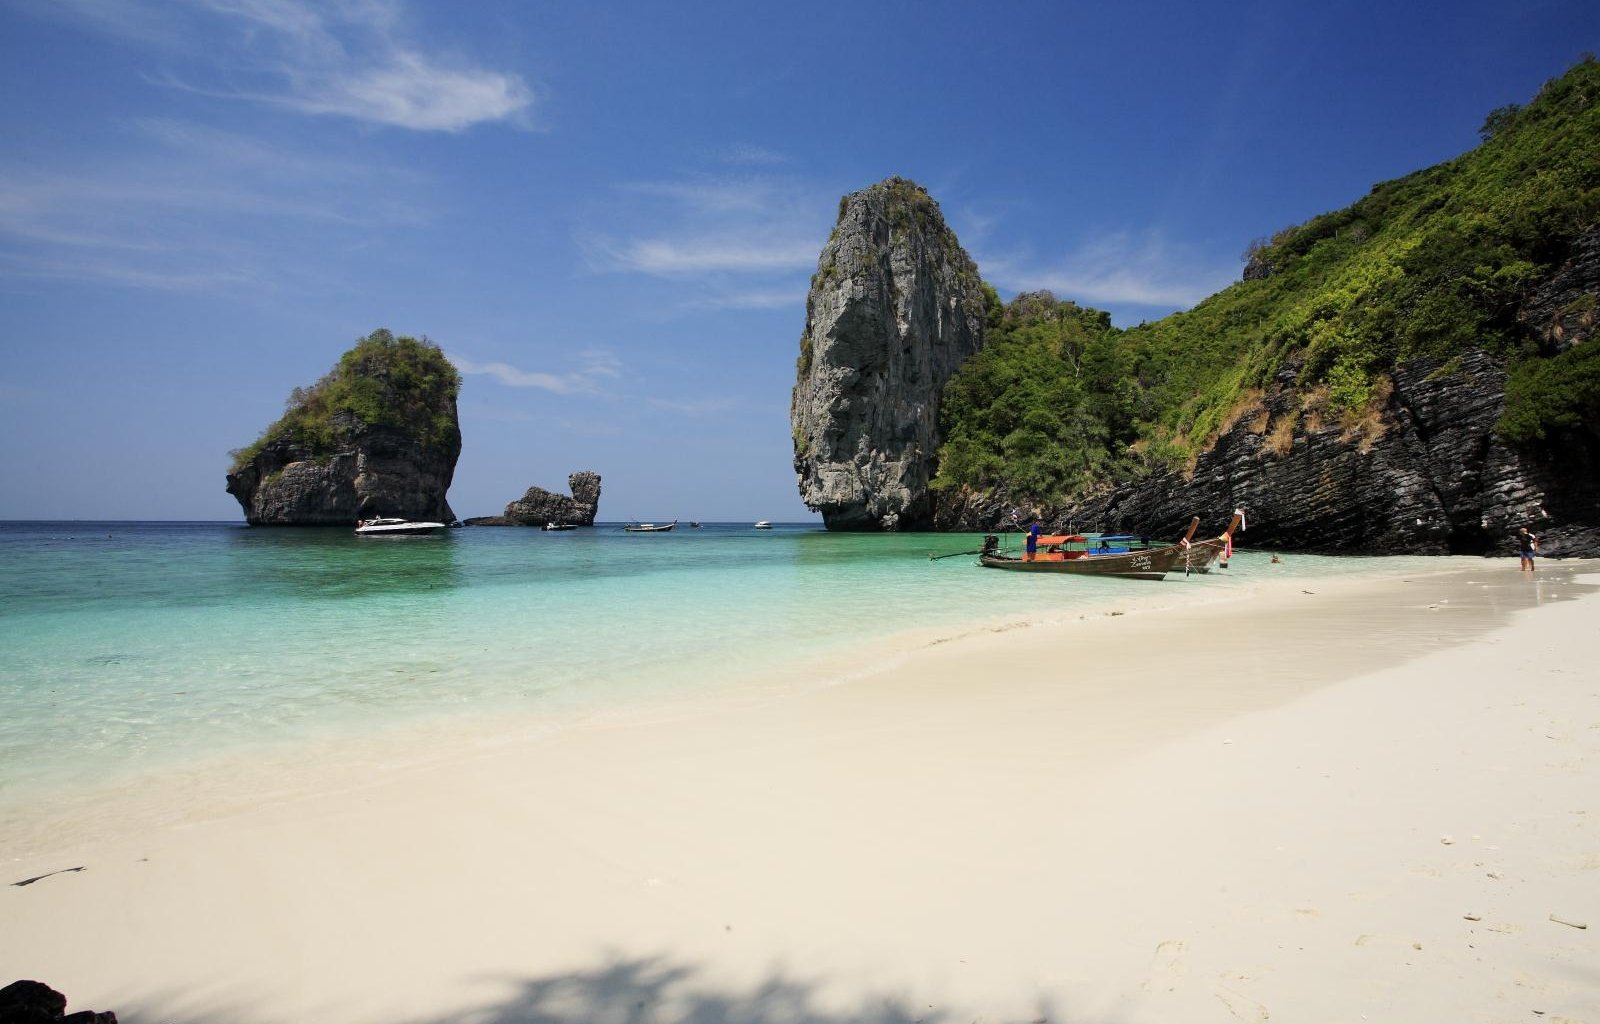 The beautiful beach on Koh Phi Phi